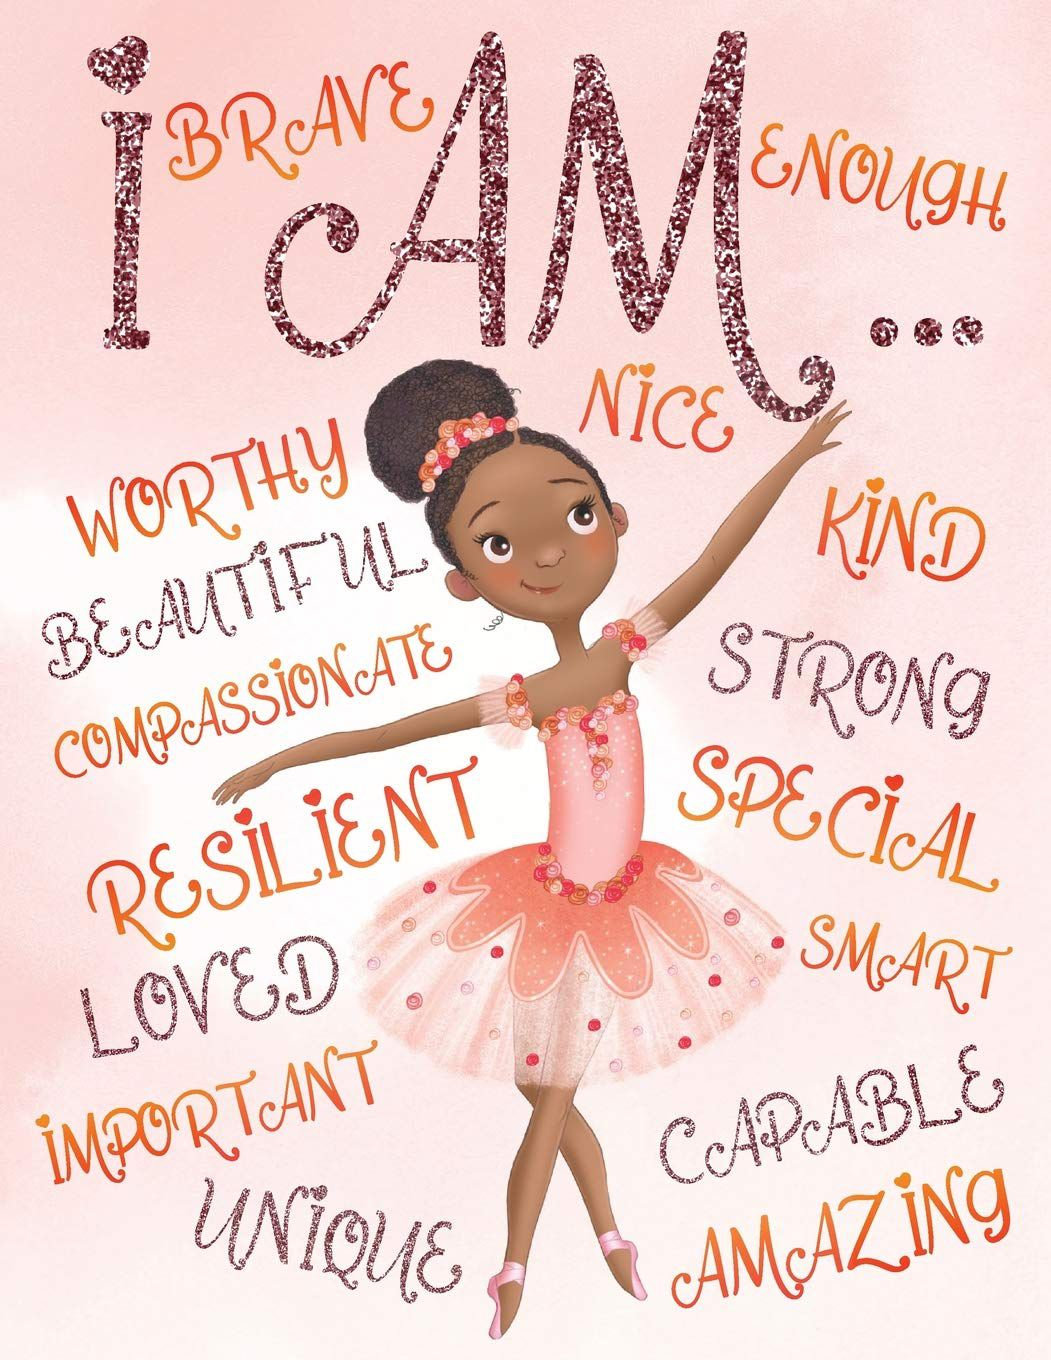 I Am Positive Affirmations for Kids Coloring Book for Young Black Girls Aaliyah Wilson with a Black ballerina on the cover